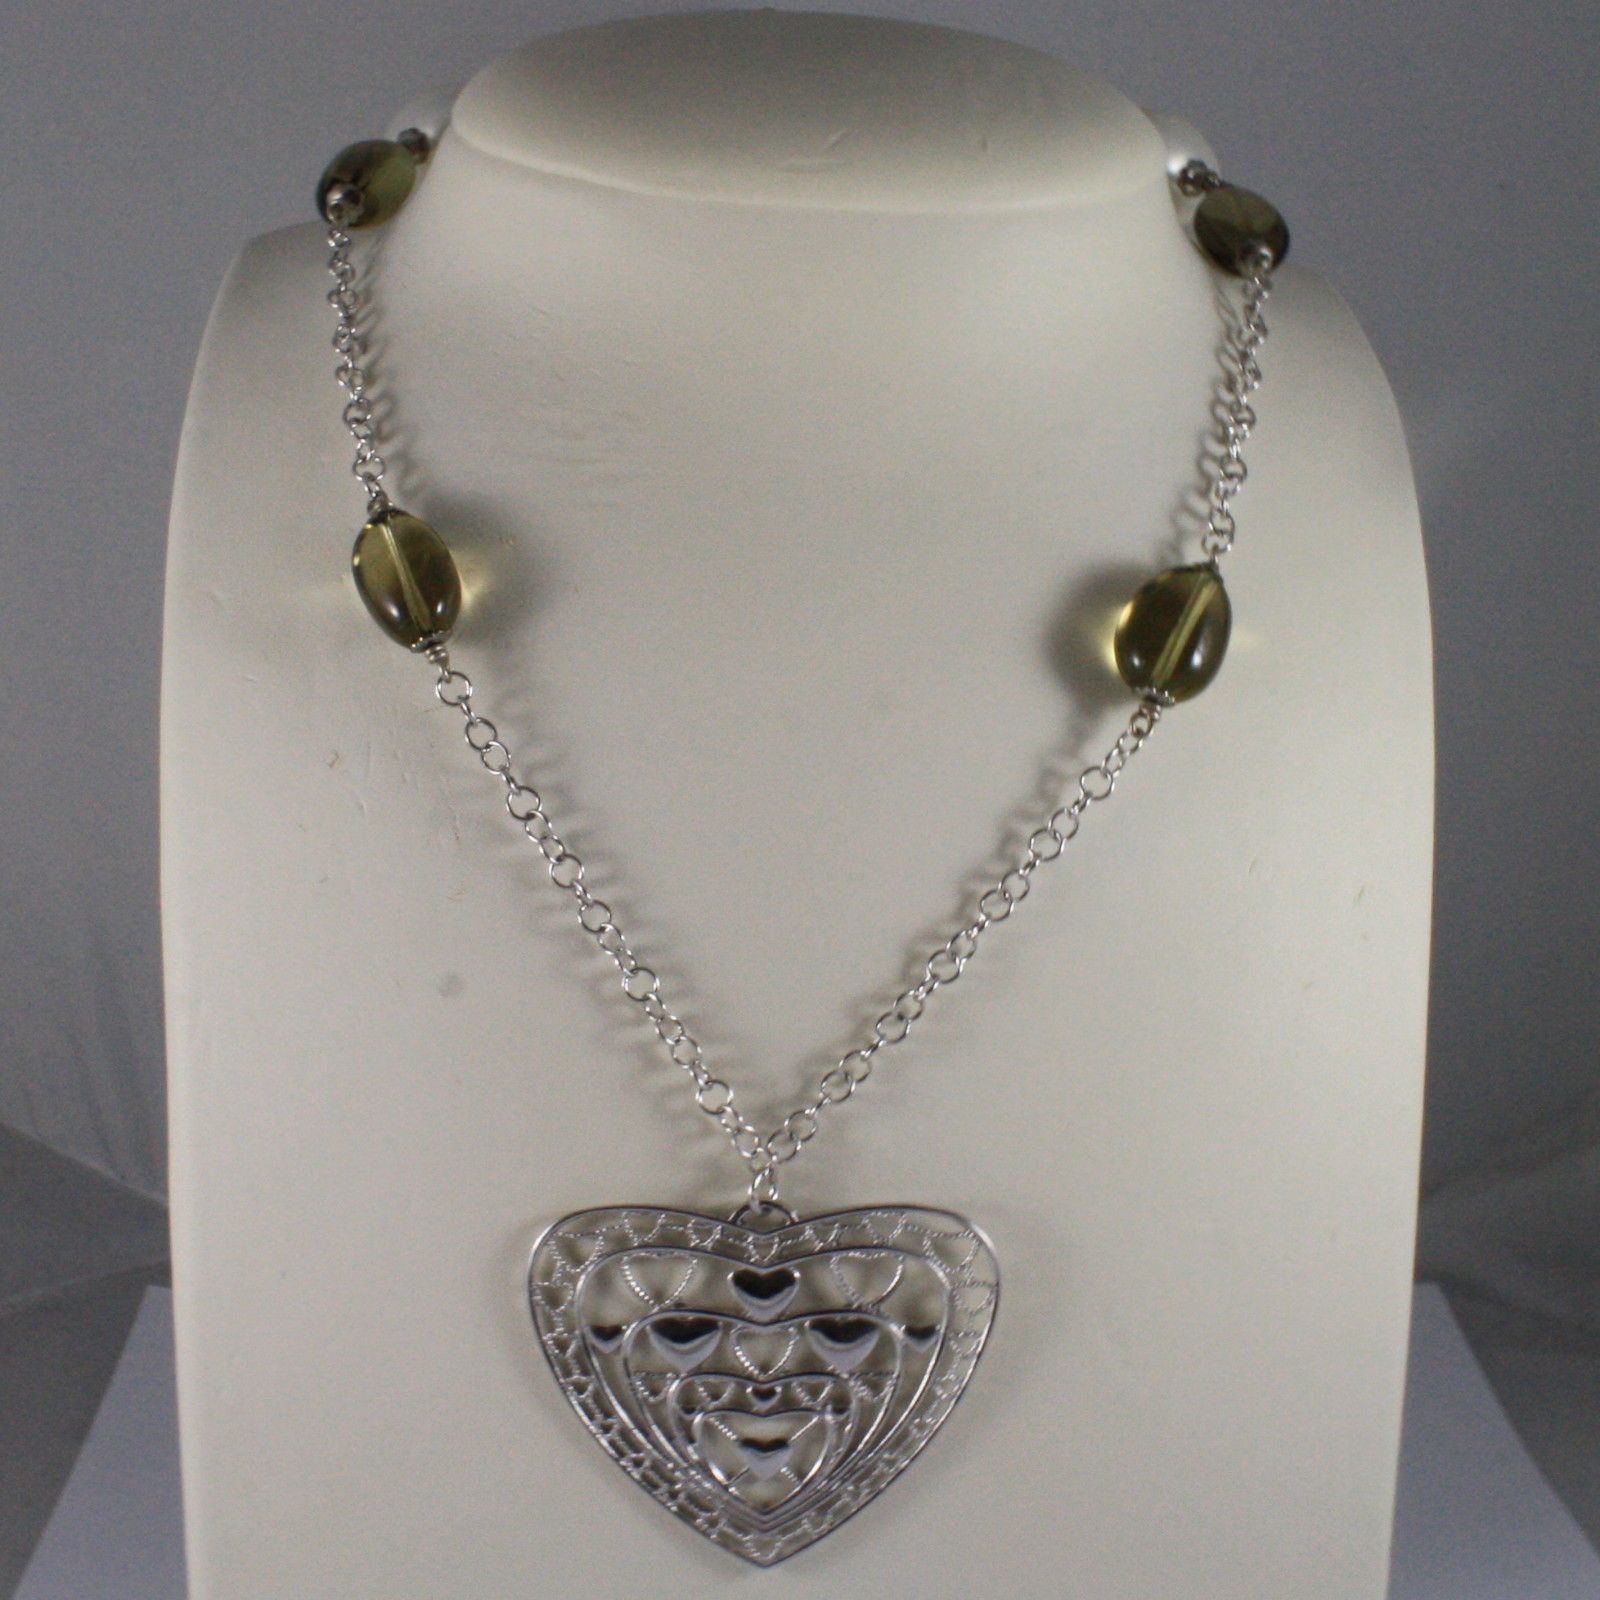 .925 SILVER RHODIUM NECKLACE WITH WHITE PEARLS, SMOKY QUARTZ AND HEART PENDANT